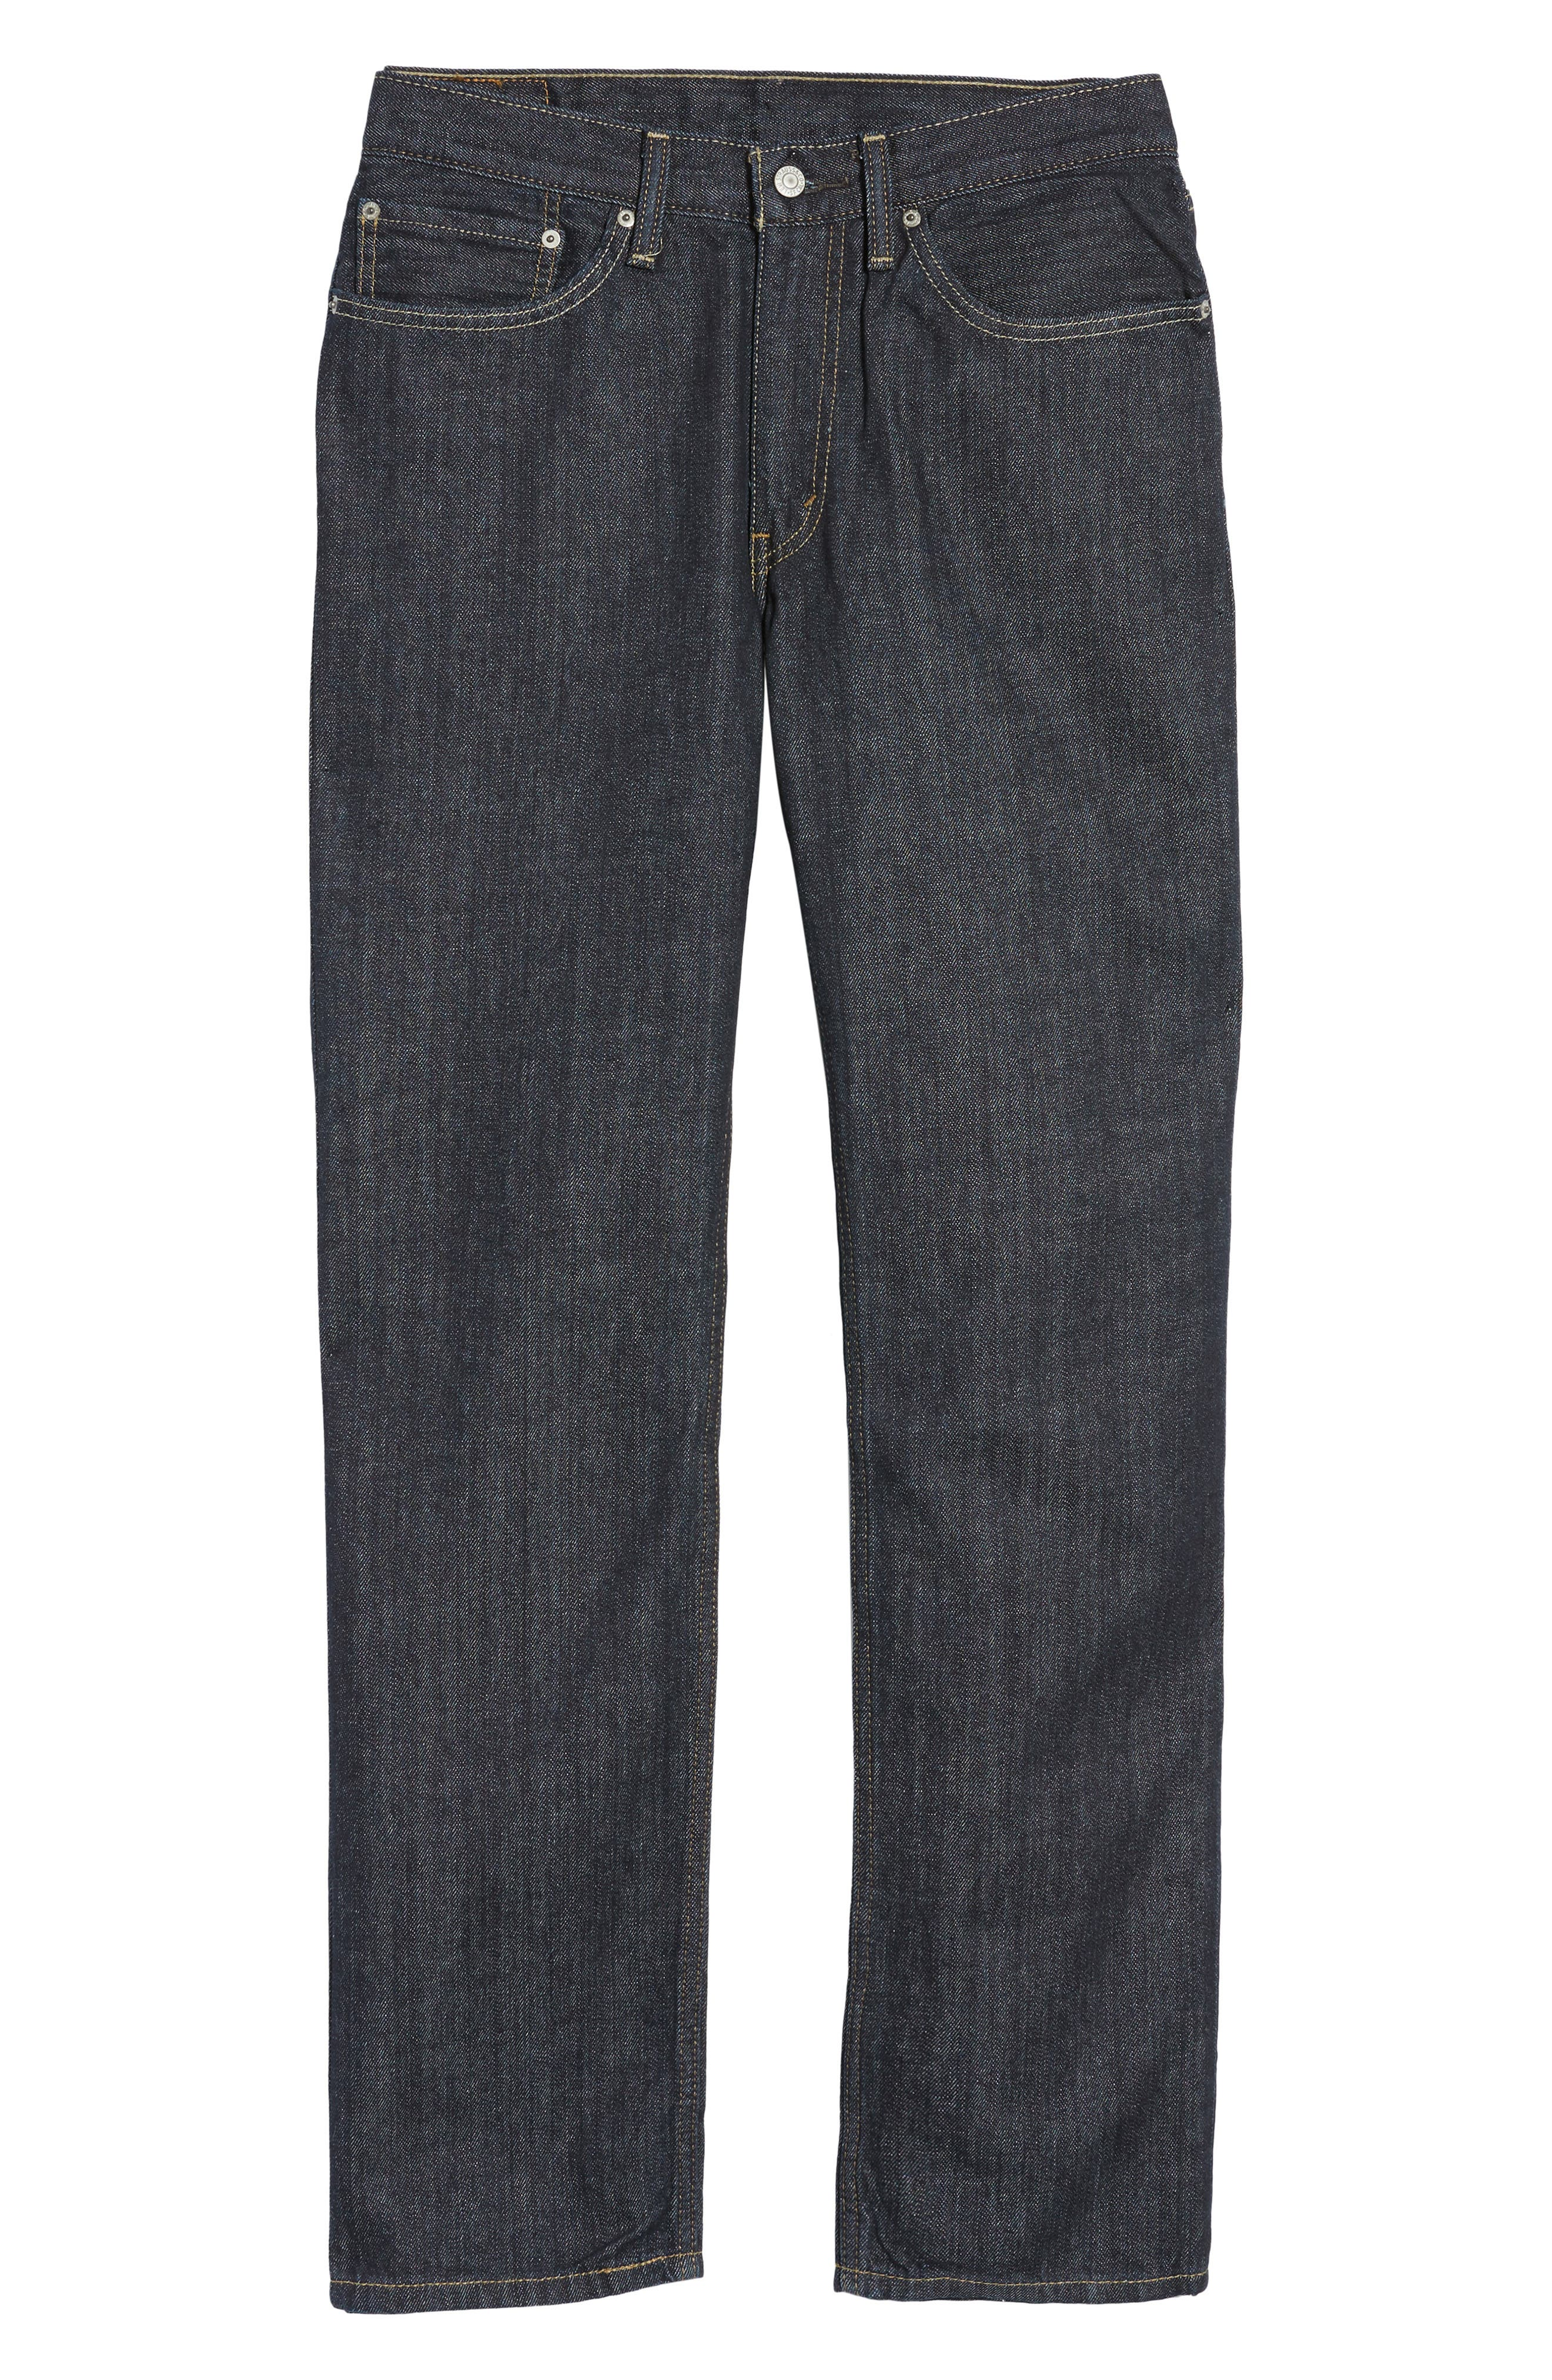 514<sup>™</sup> Straight Leg Jeans,                             Alternate thumbnail 6, color,                             Tumbled Rigid